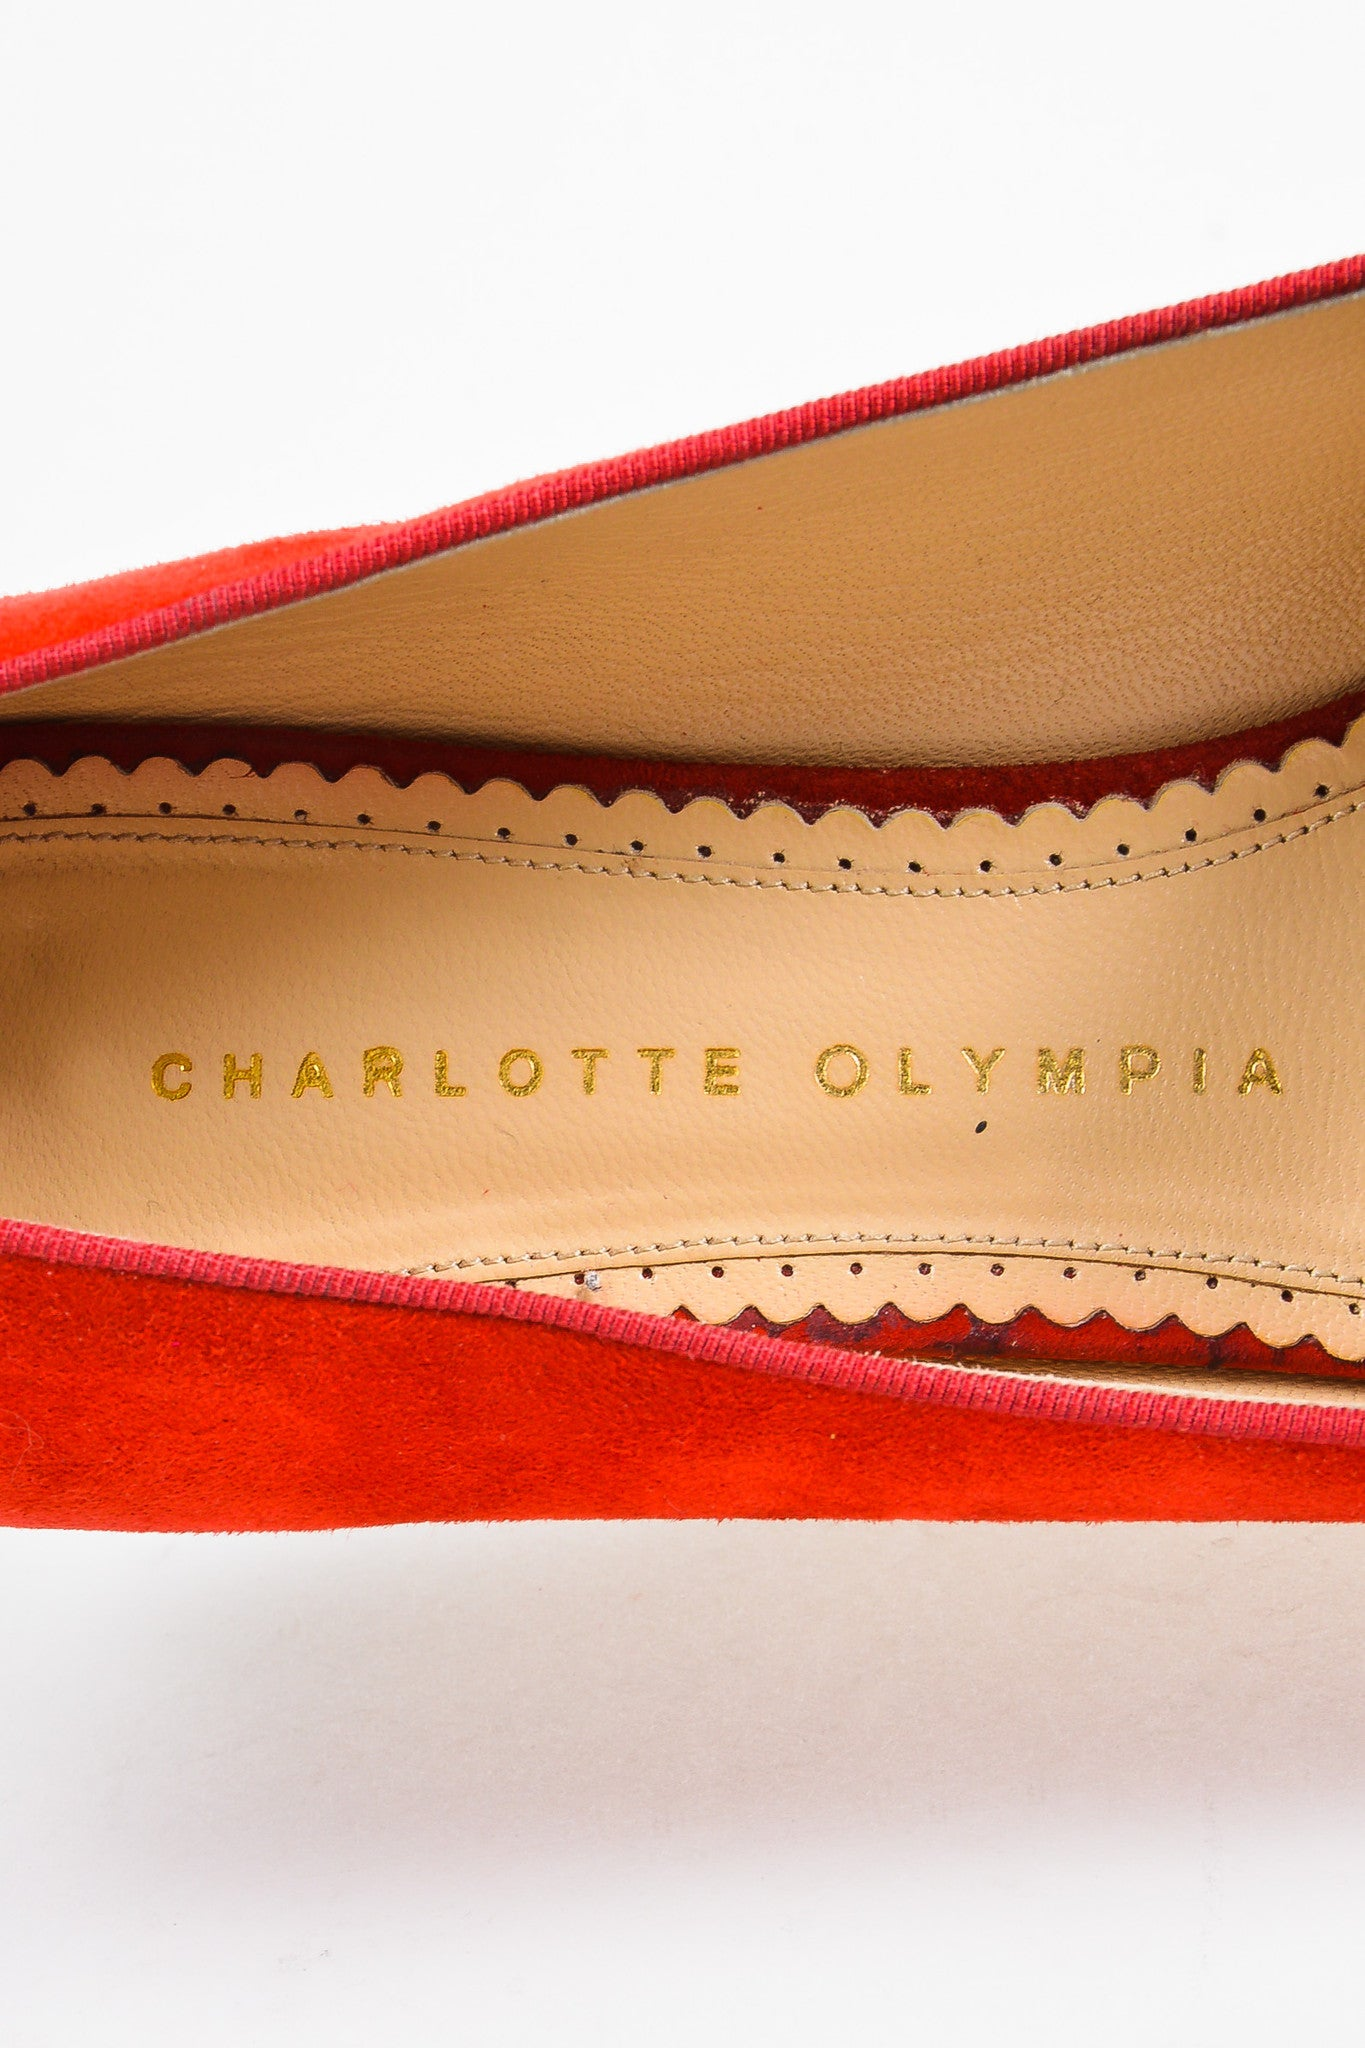 "Charlotte Olympia Red Suede Calf Hair Leopard Print ""Bisoux"" Flats Brand"